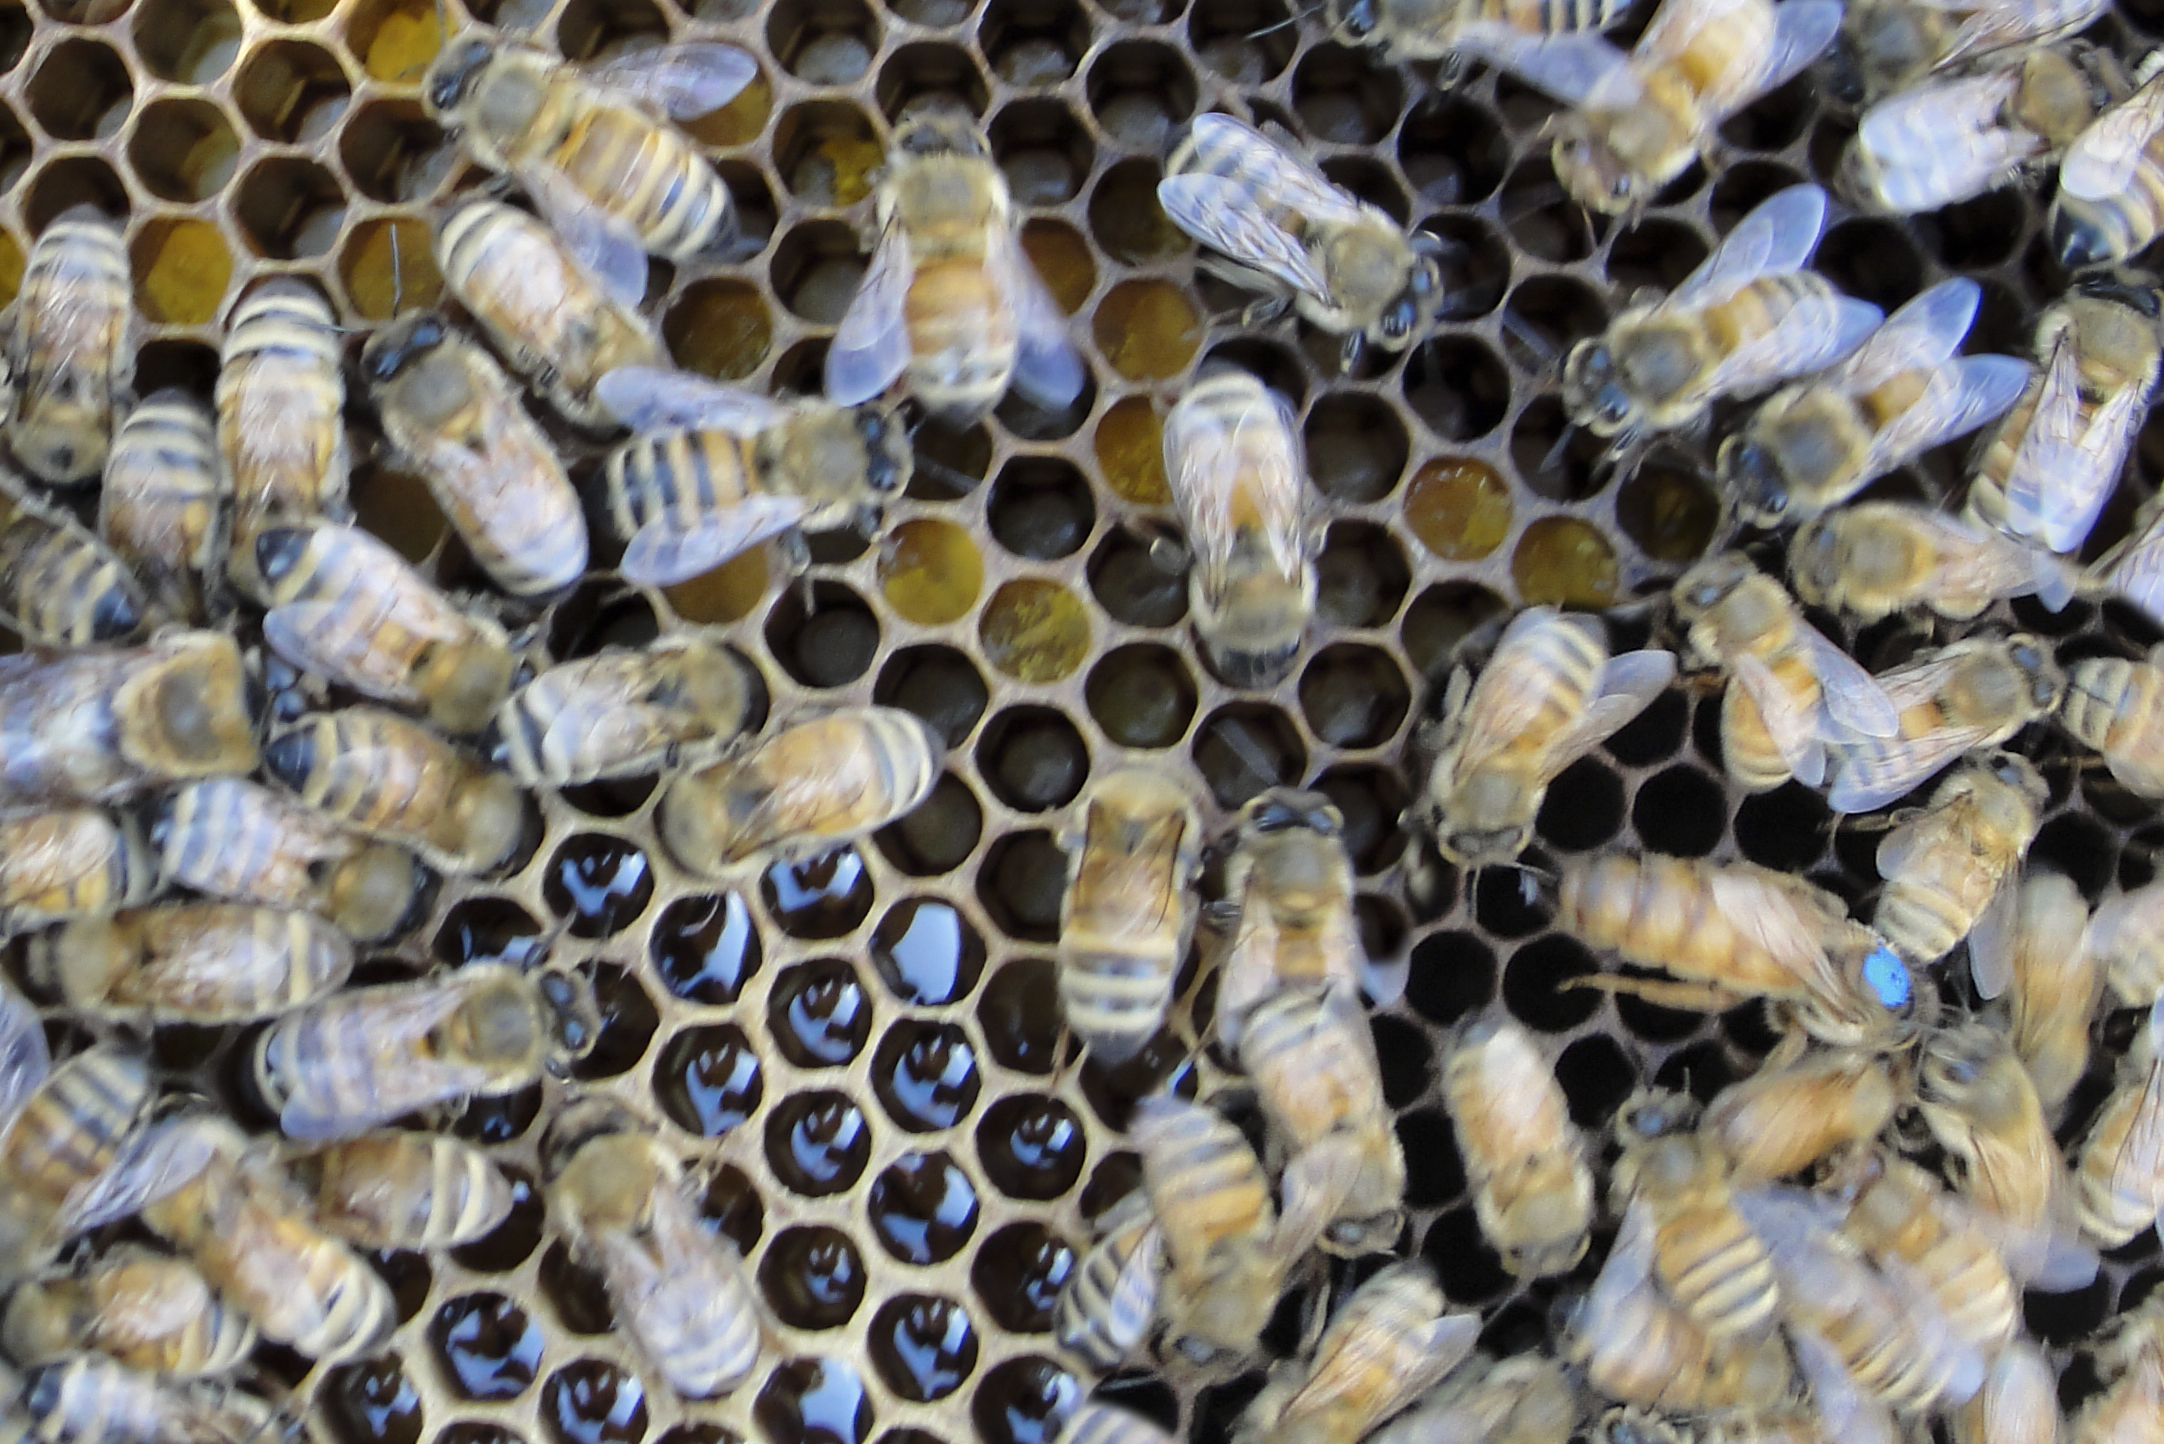 can you spot the Queen bee in this hive